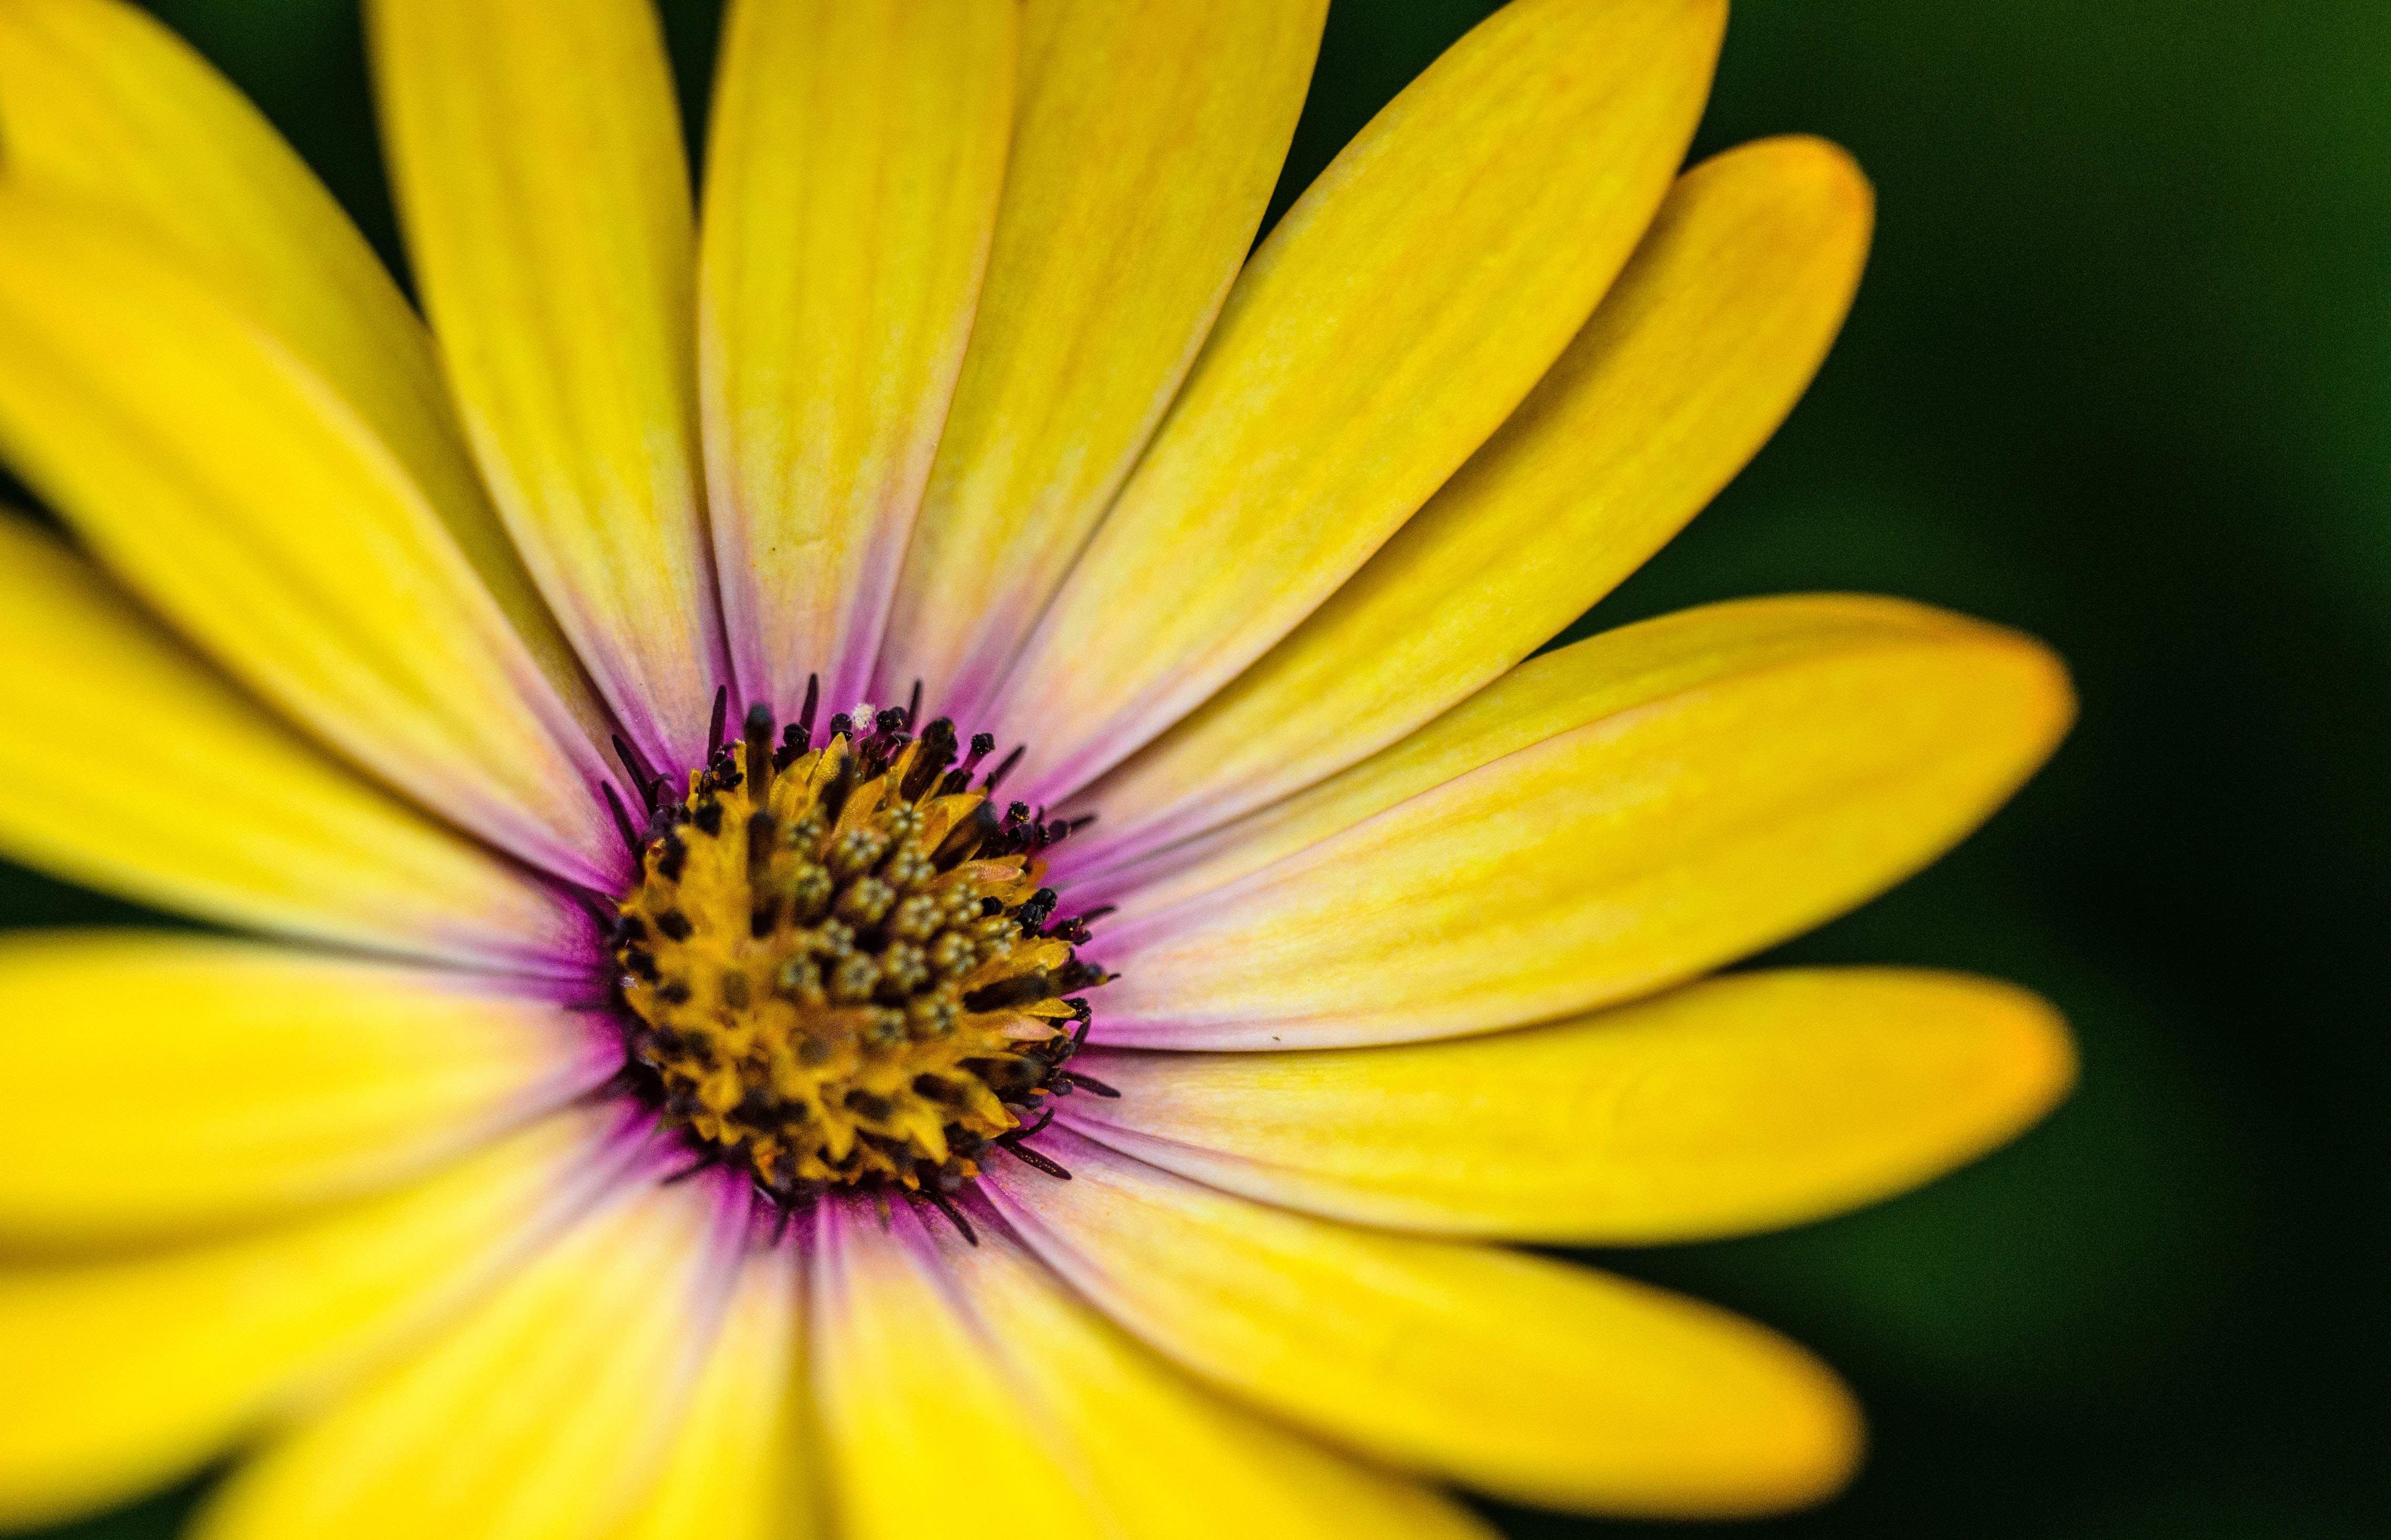 A macro shot of a yellow flower with a purple tint around its center